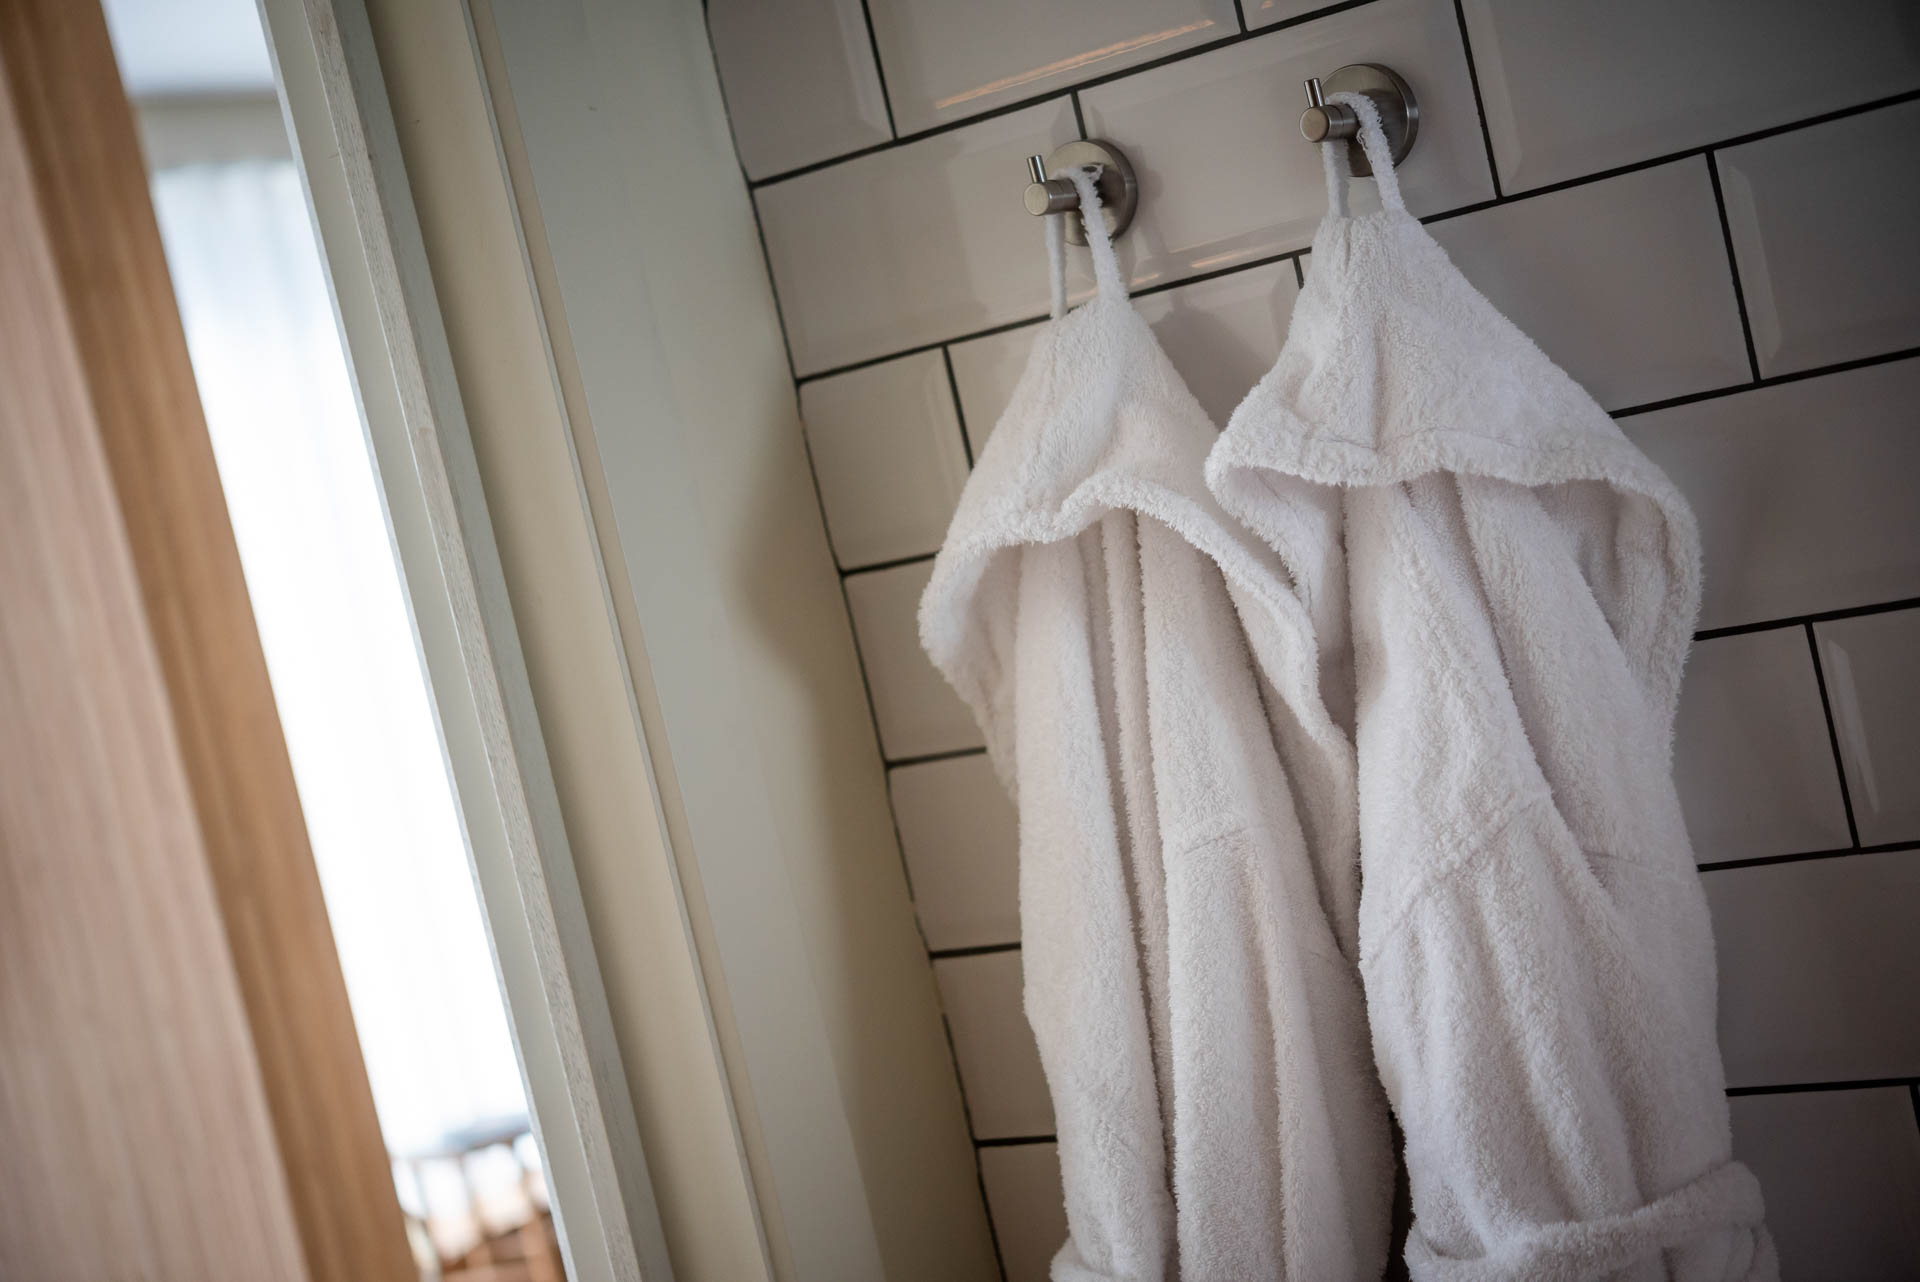 Bathrobes in the ensuite of PREMIER SUITES Antwerp